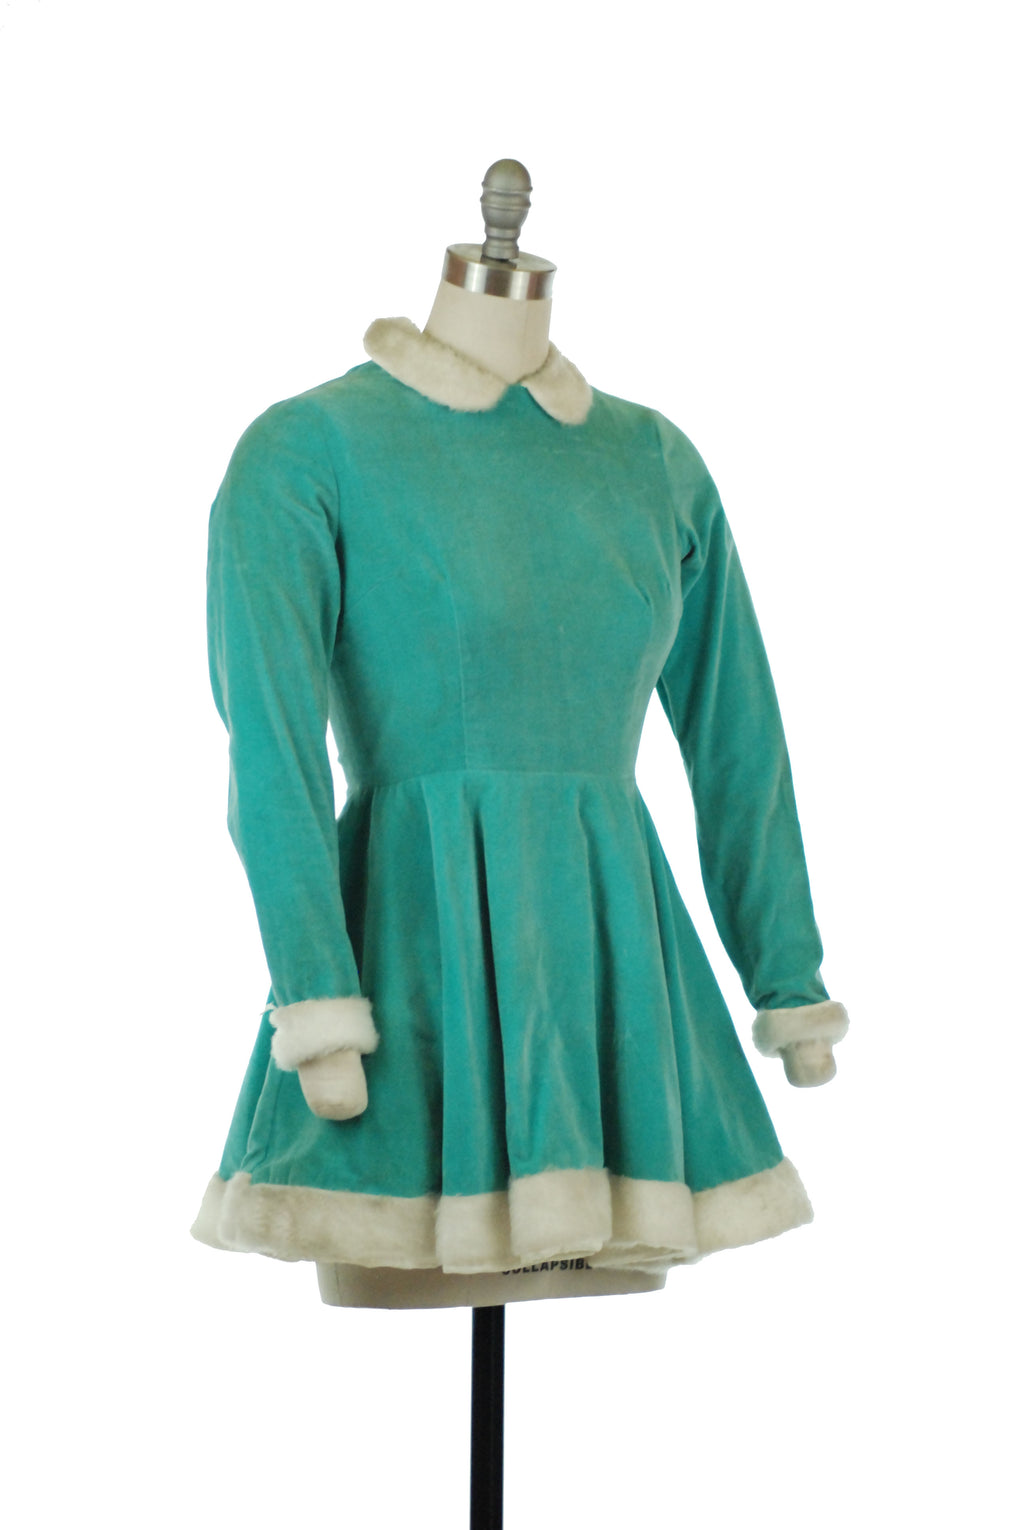 Vintage 1960s Mint Green Velveteen Skating Dress with Fuzzy White Trim